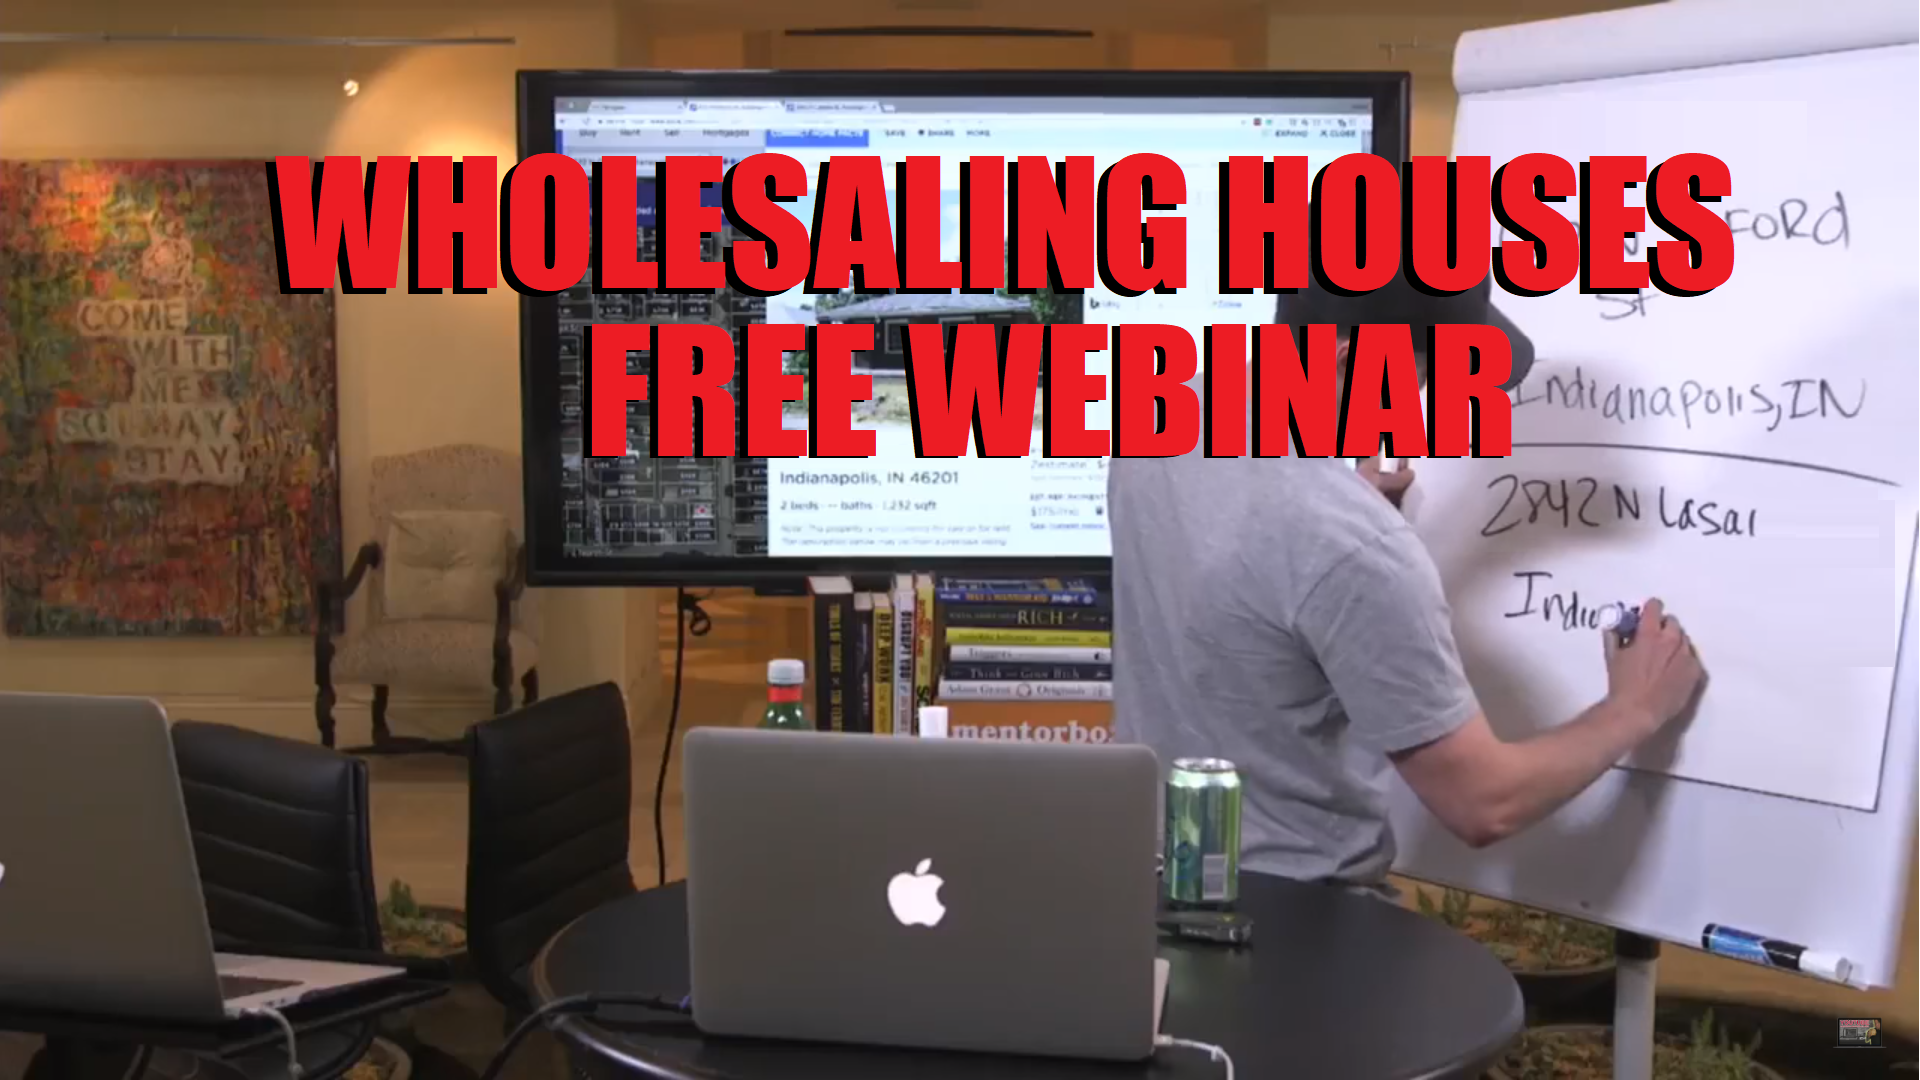 Wholesaling Houses Webinar in Anchorage Alaska